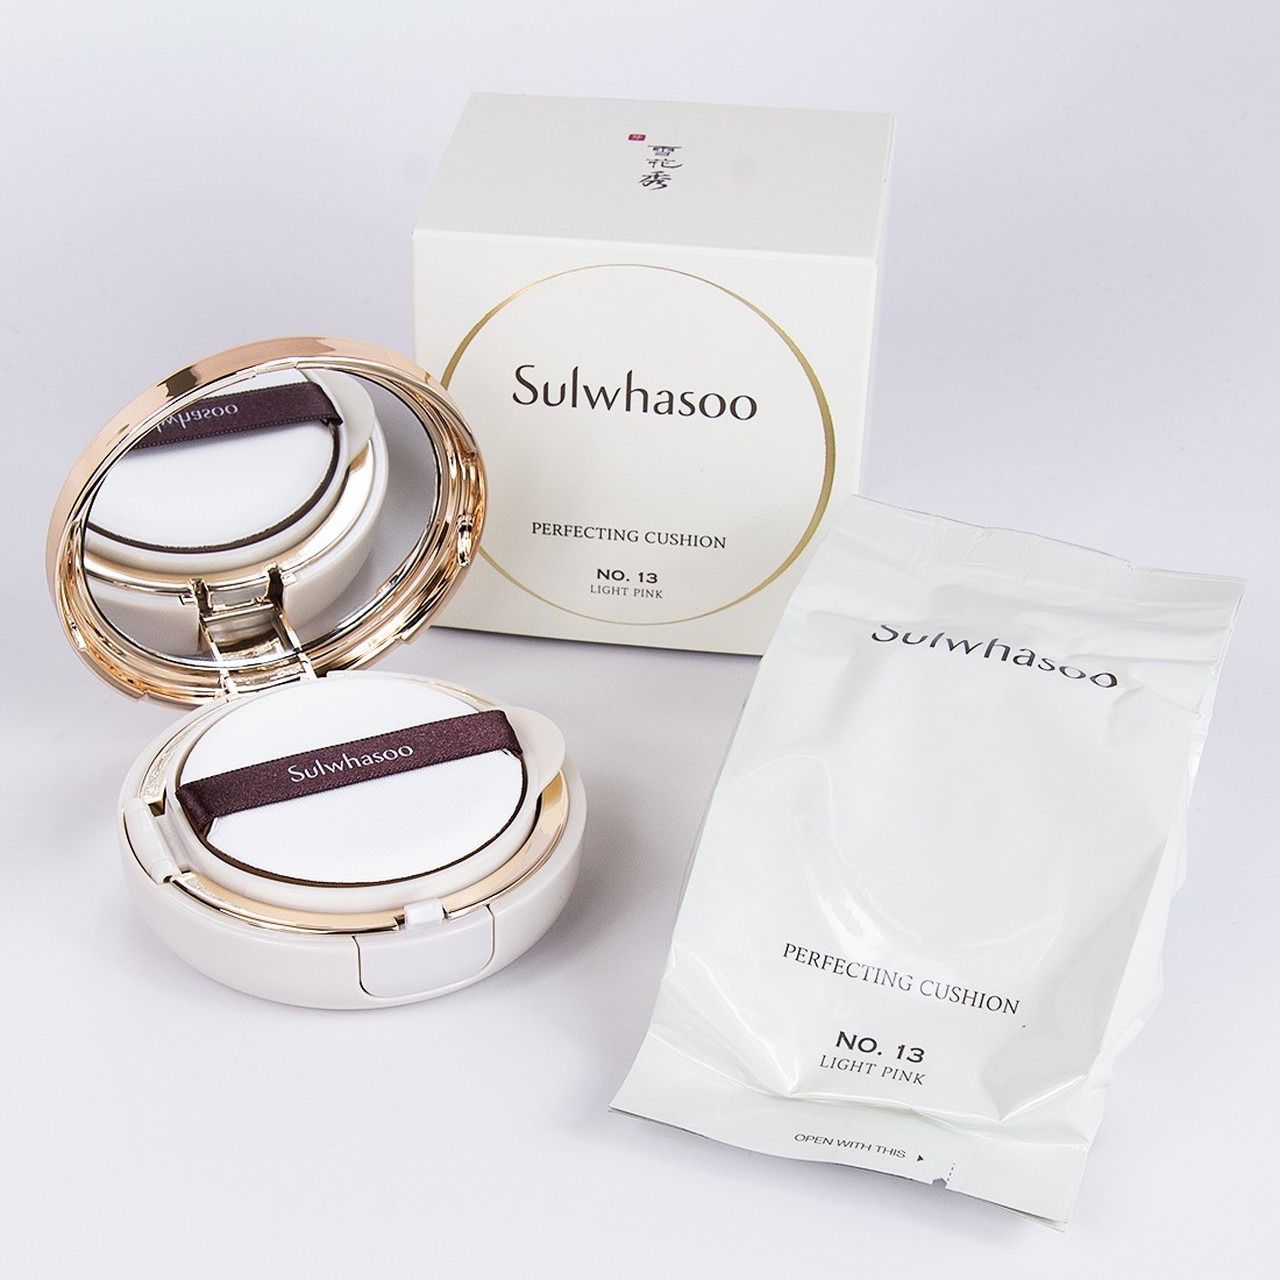 Perfecting Cushion Foundation Sulwhasoo